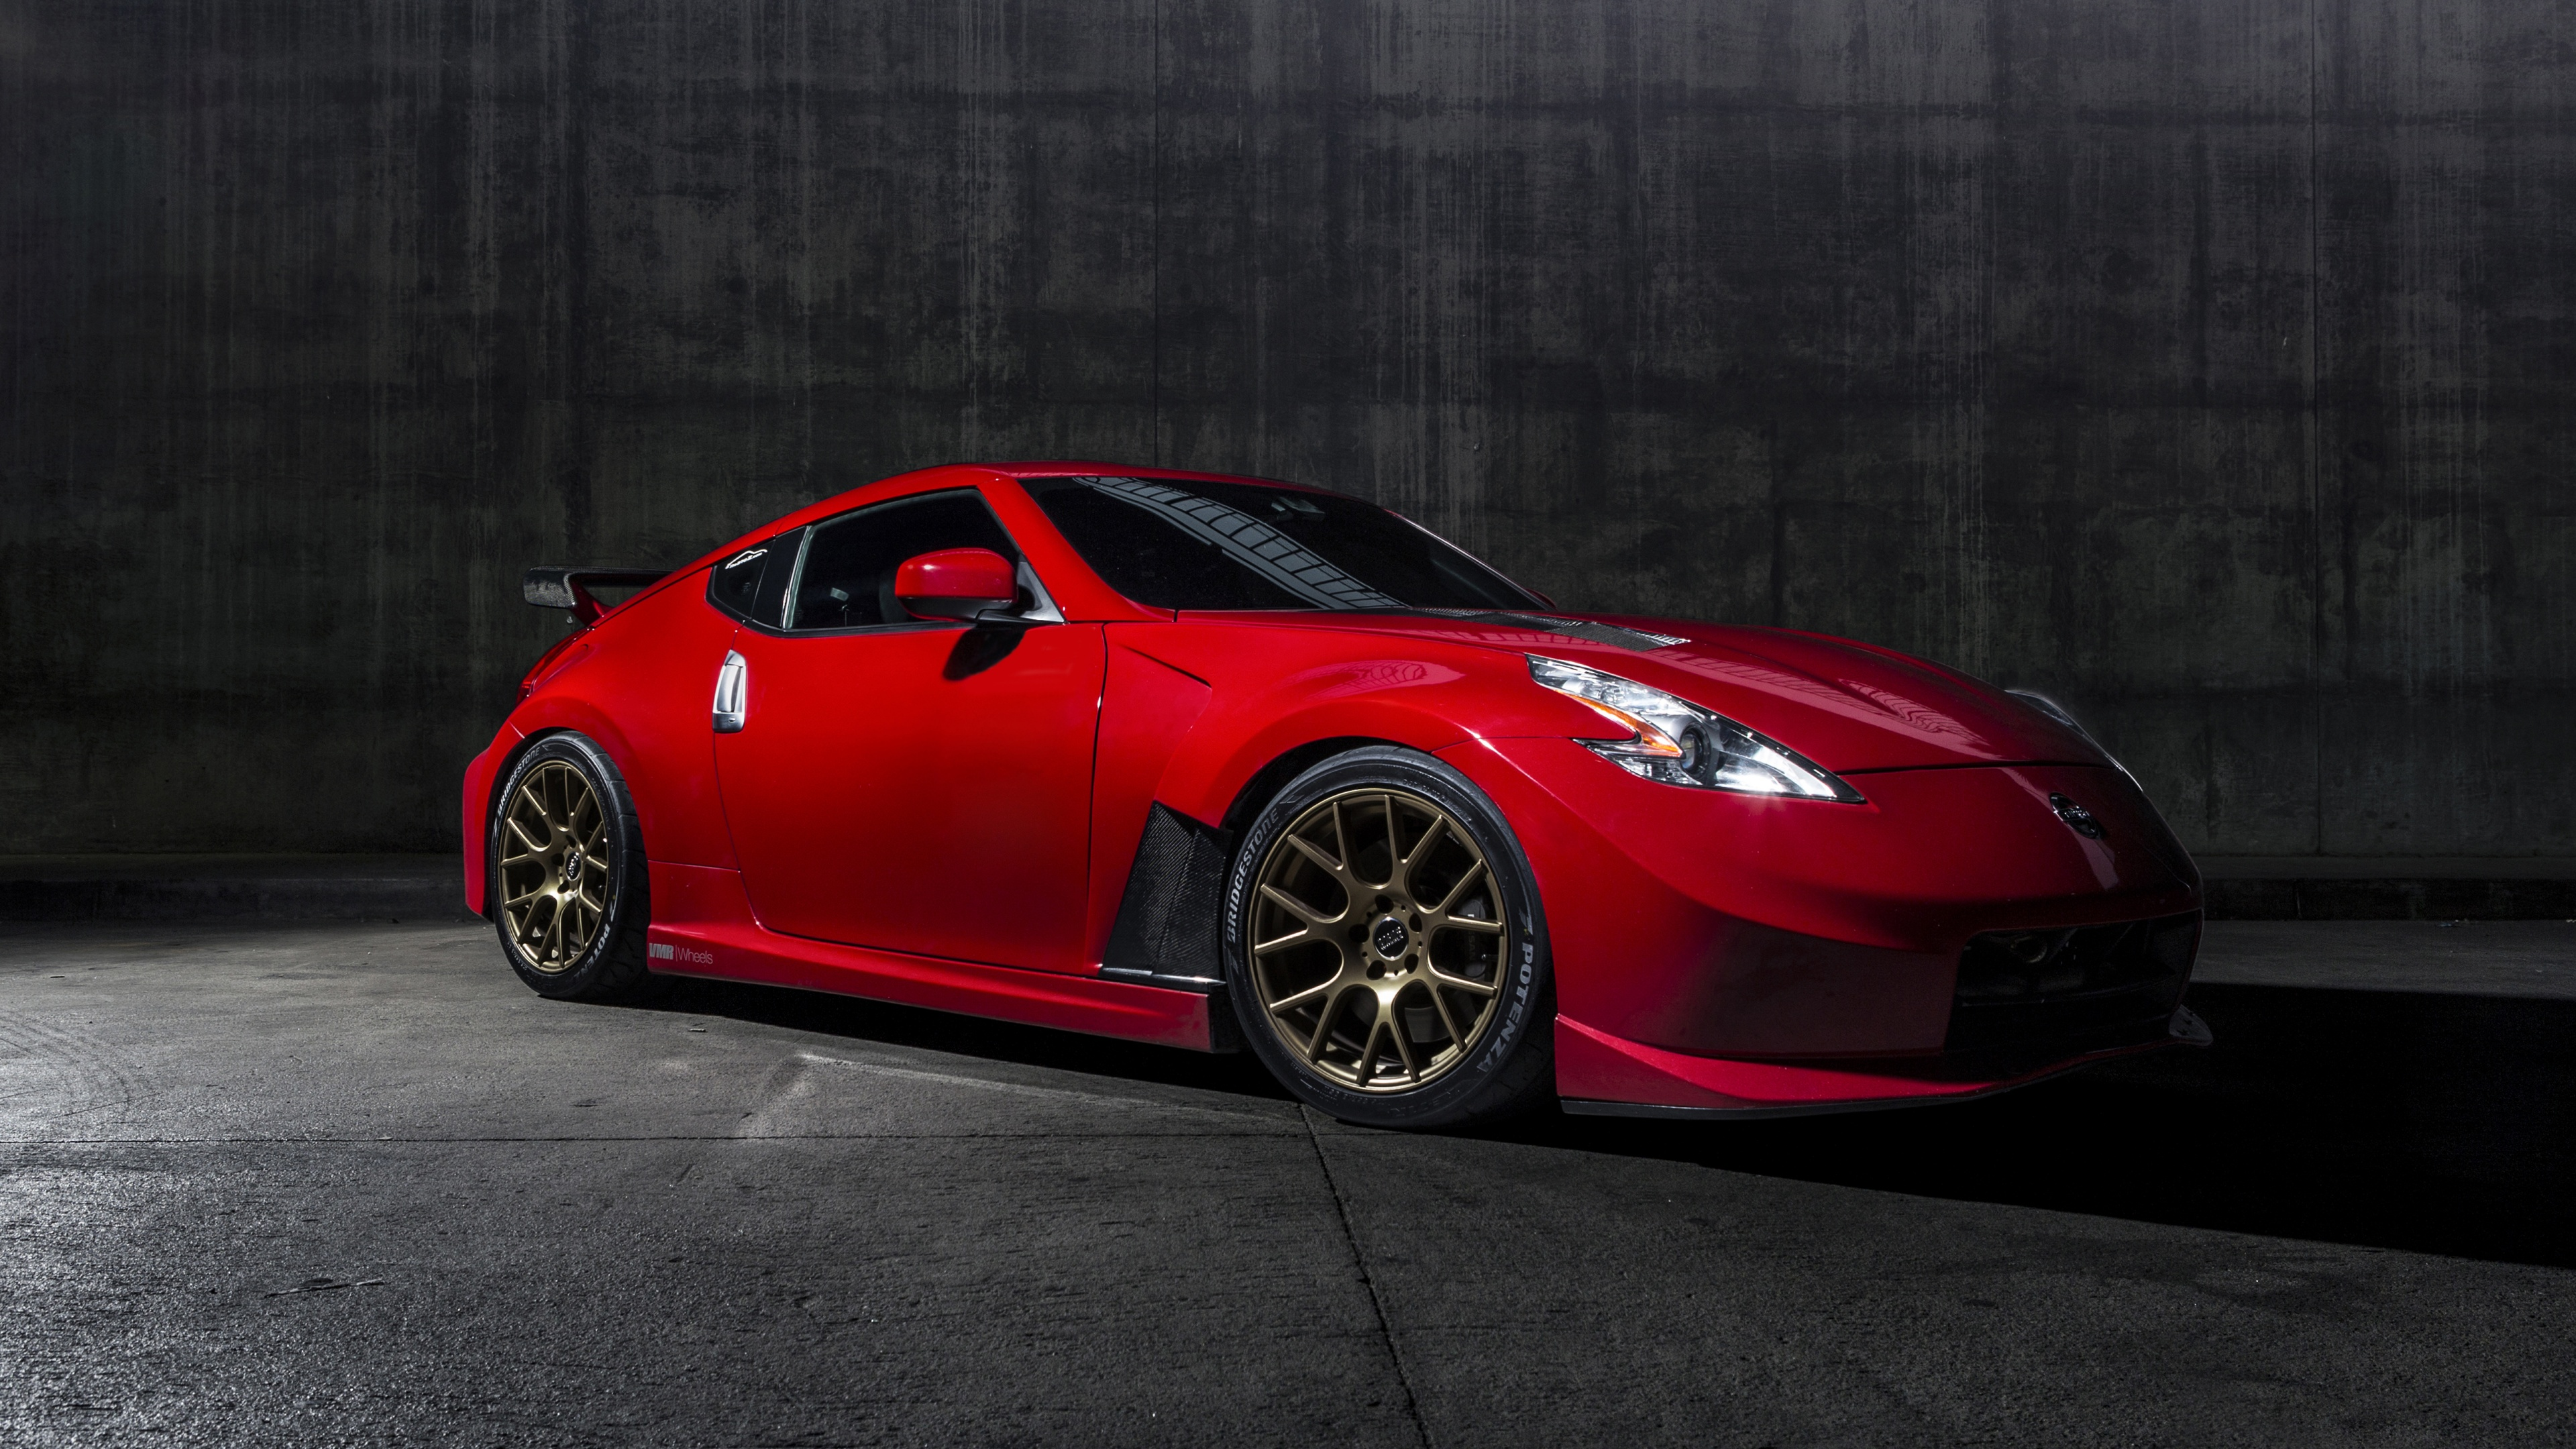 Nissan z Nismo K Wallpapers in jpg format for free